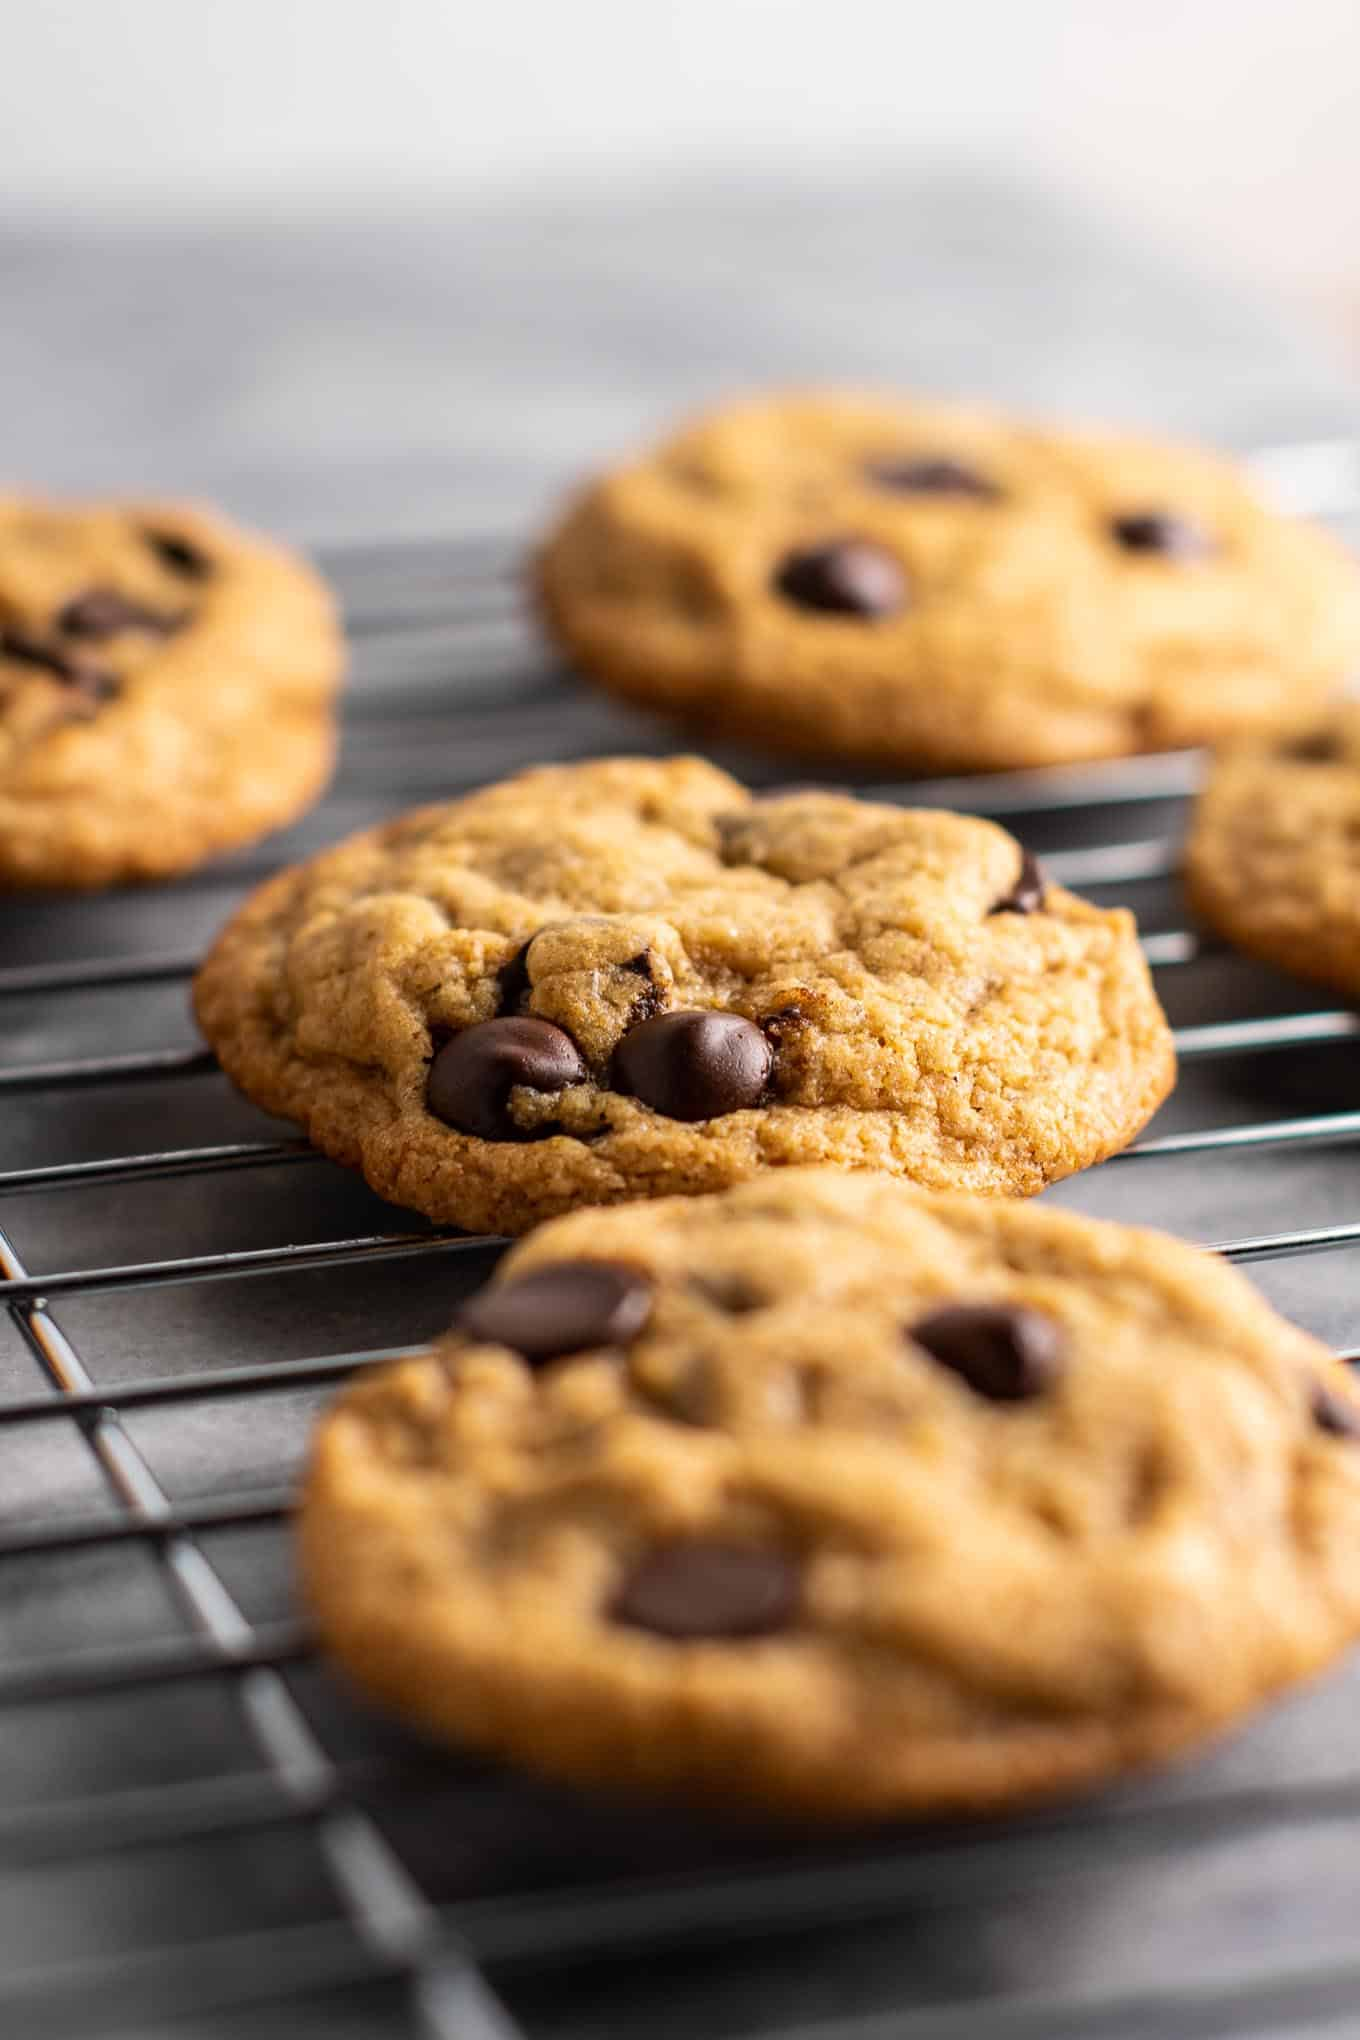 The BEST vegan chocolate chip cookies - heck the best cookies of any kind I've ever had! No one would ever guess these don't have eggs and they taste gourmet! #vegan #dessert #chocolatechipcookies #dairyfree